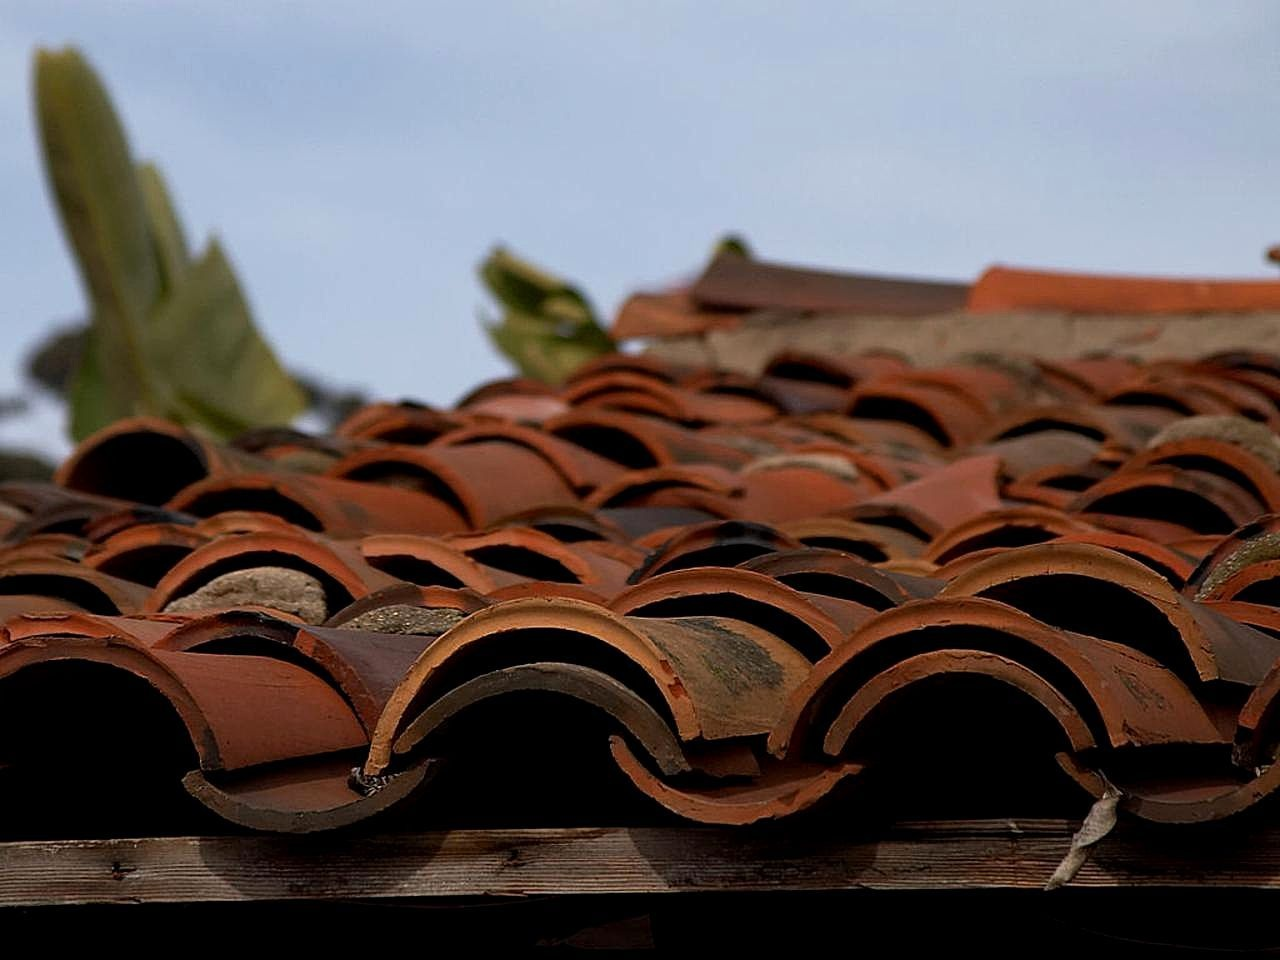 Clay Tile Vs Concrete Tile Making The Right Choice For Your Home Eagle Watch Roofing Atlanta Georgia